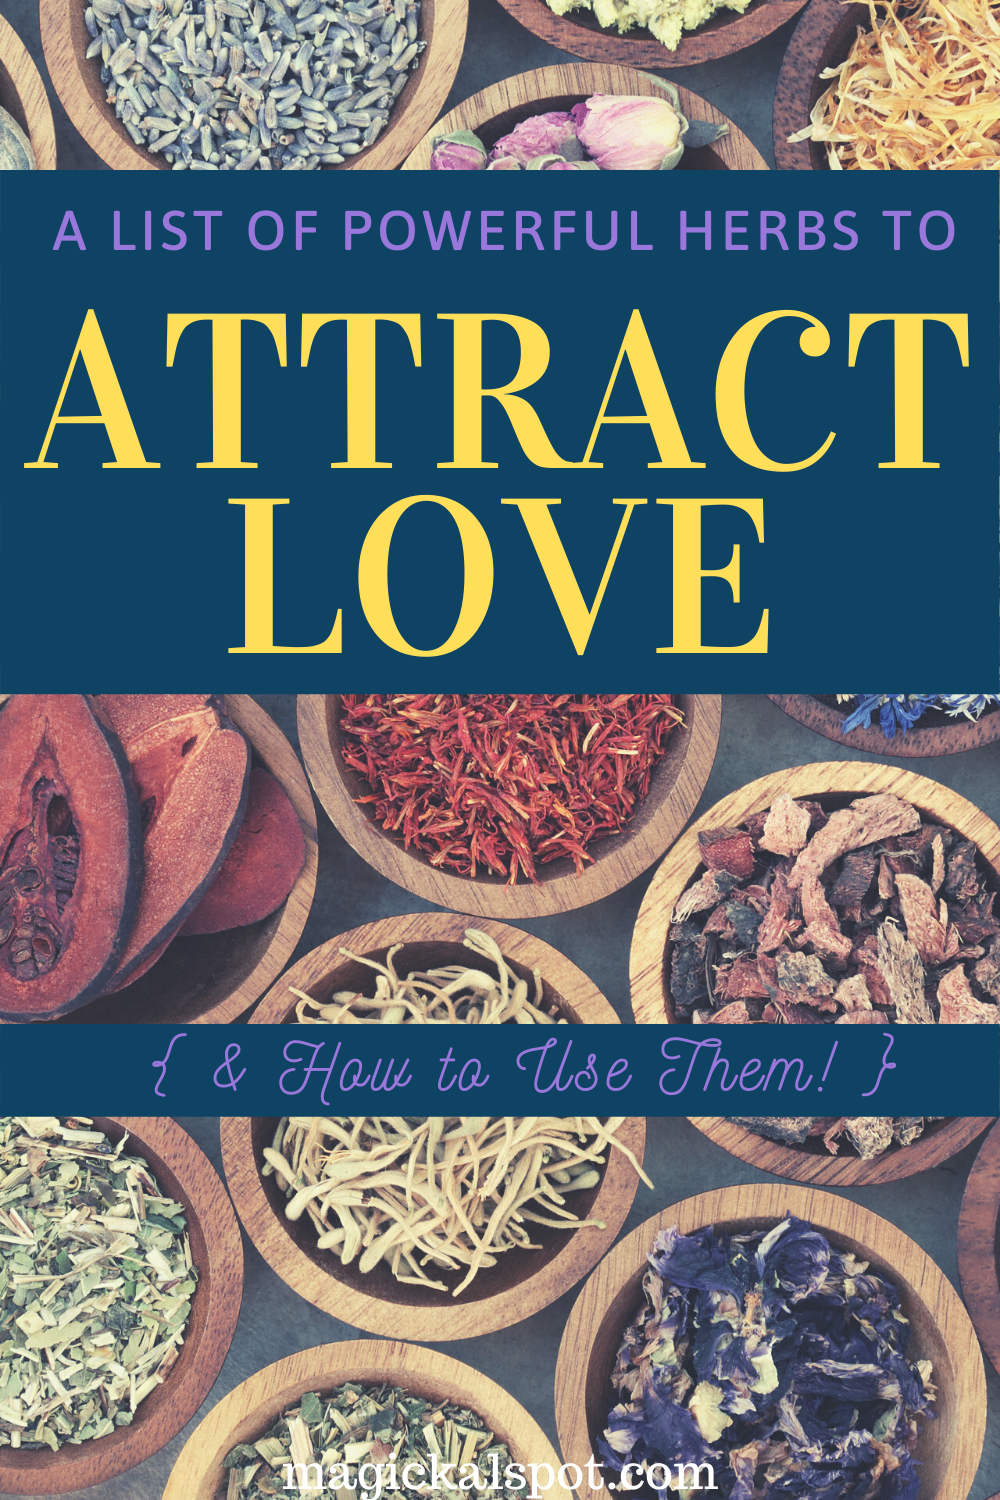 MAGIC SPELLS THAT WORK TO BRING BACK YOUR LOVER AND REUNITE AGAIN